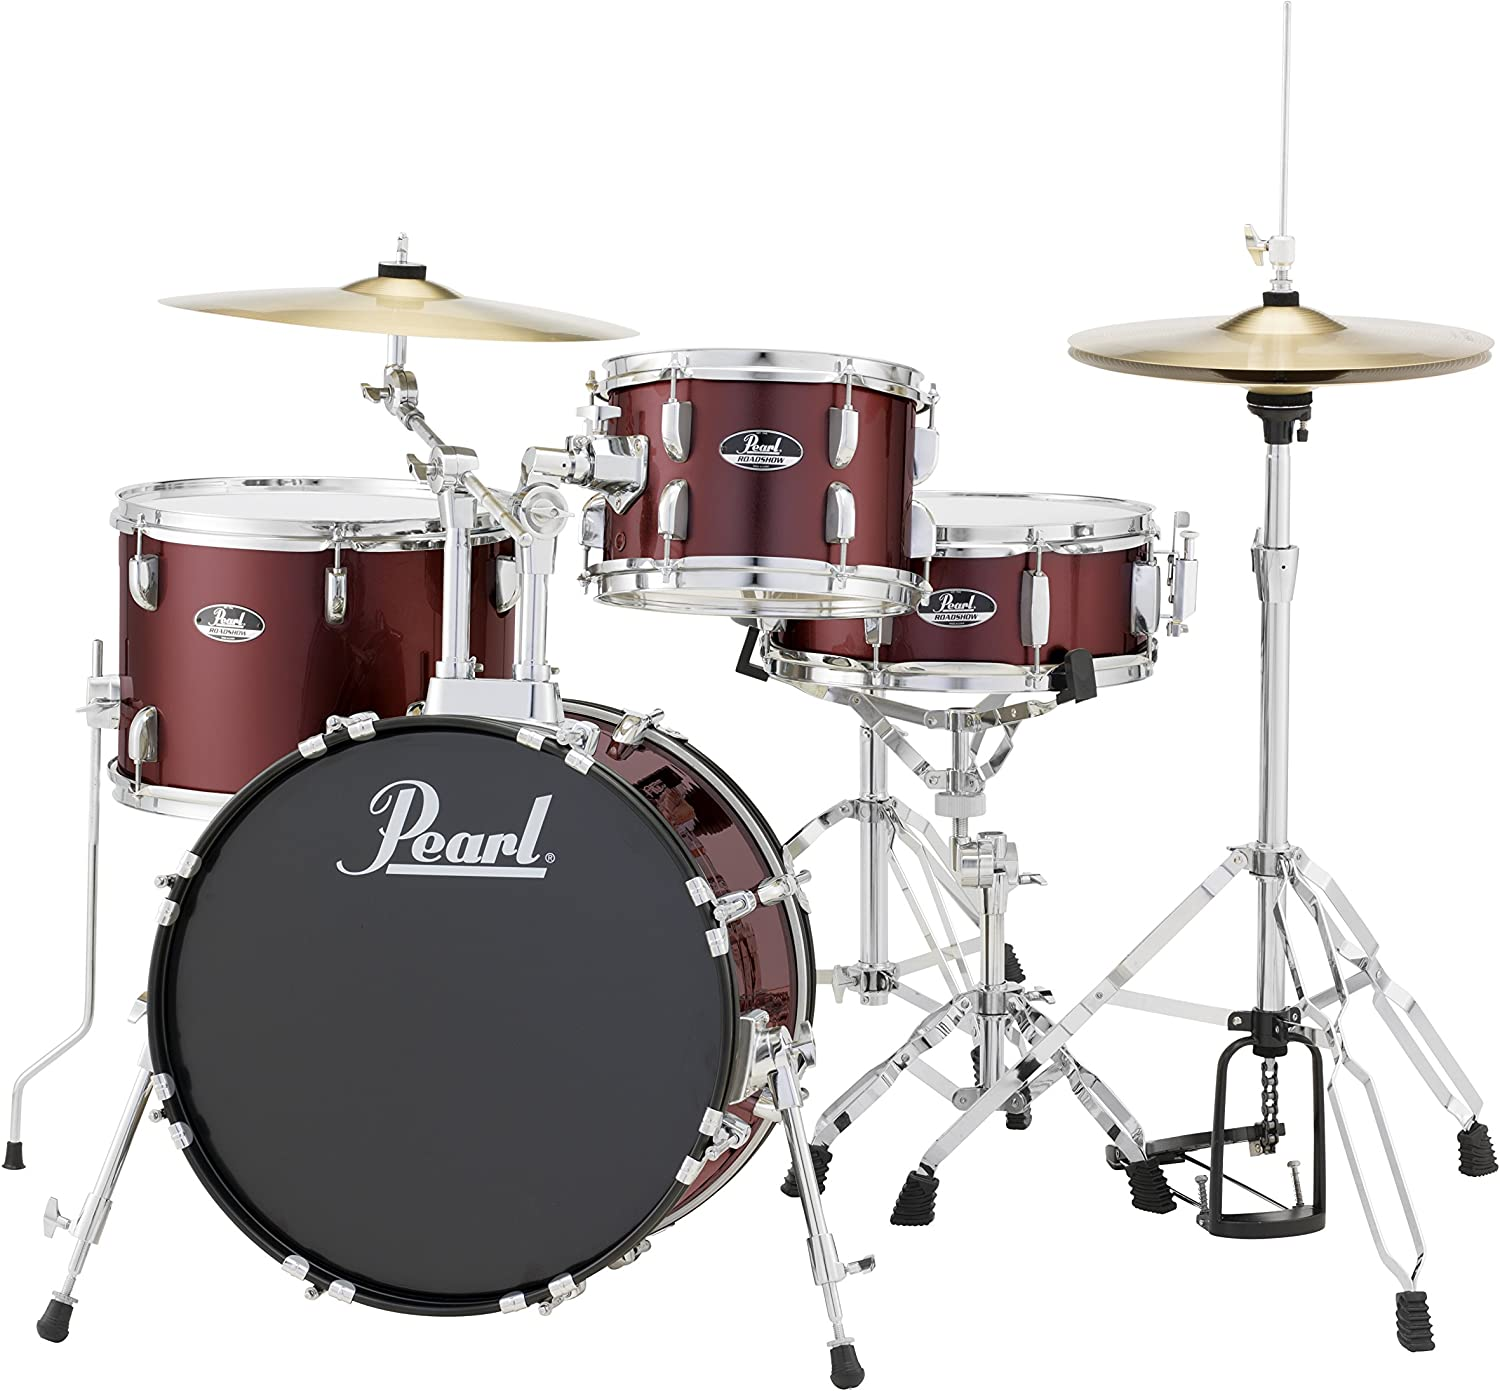 How much does a drum set cost